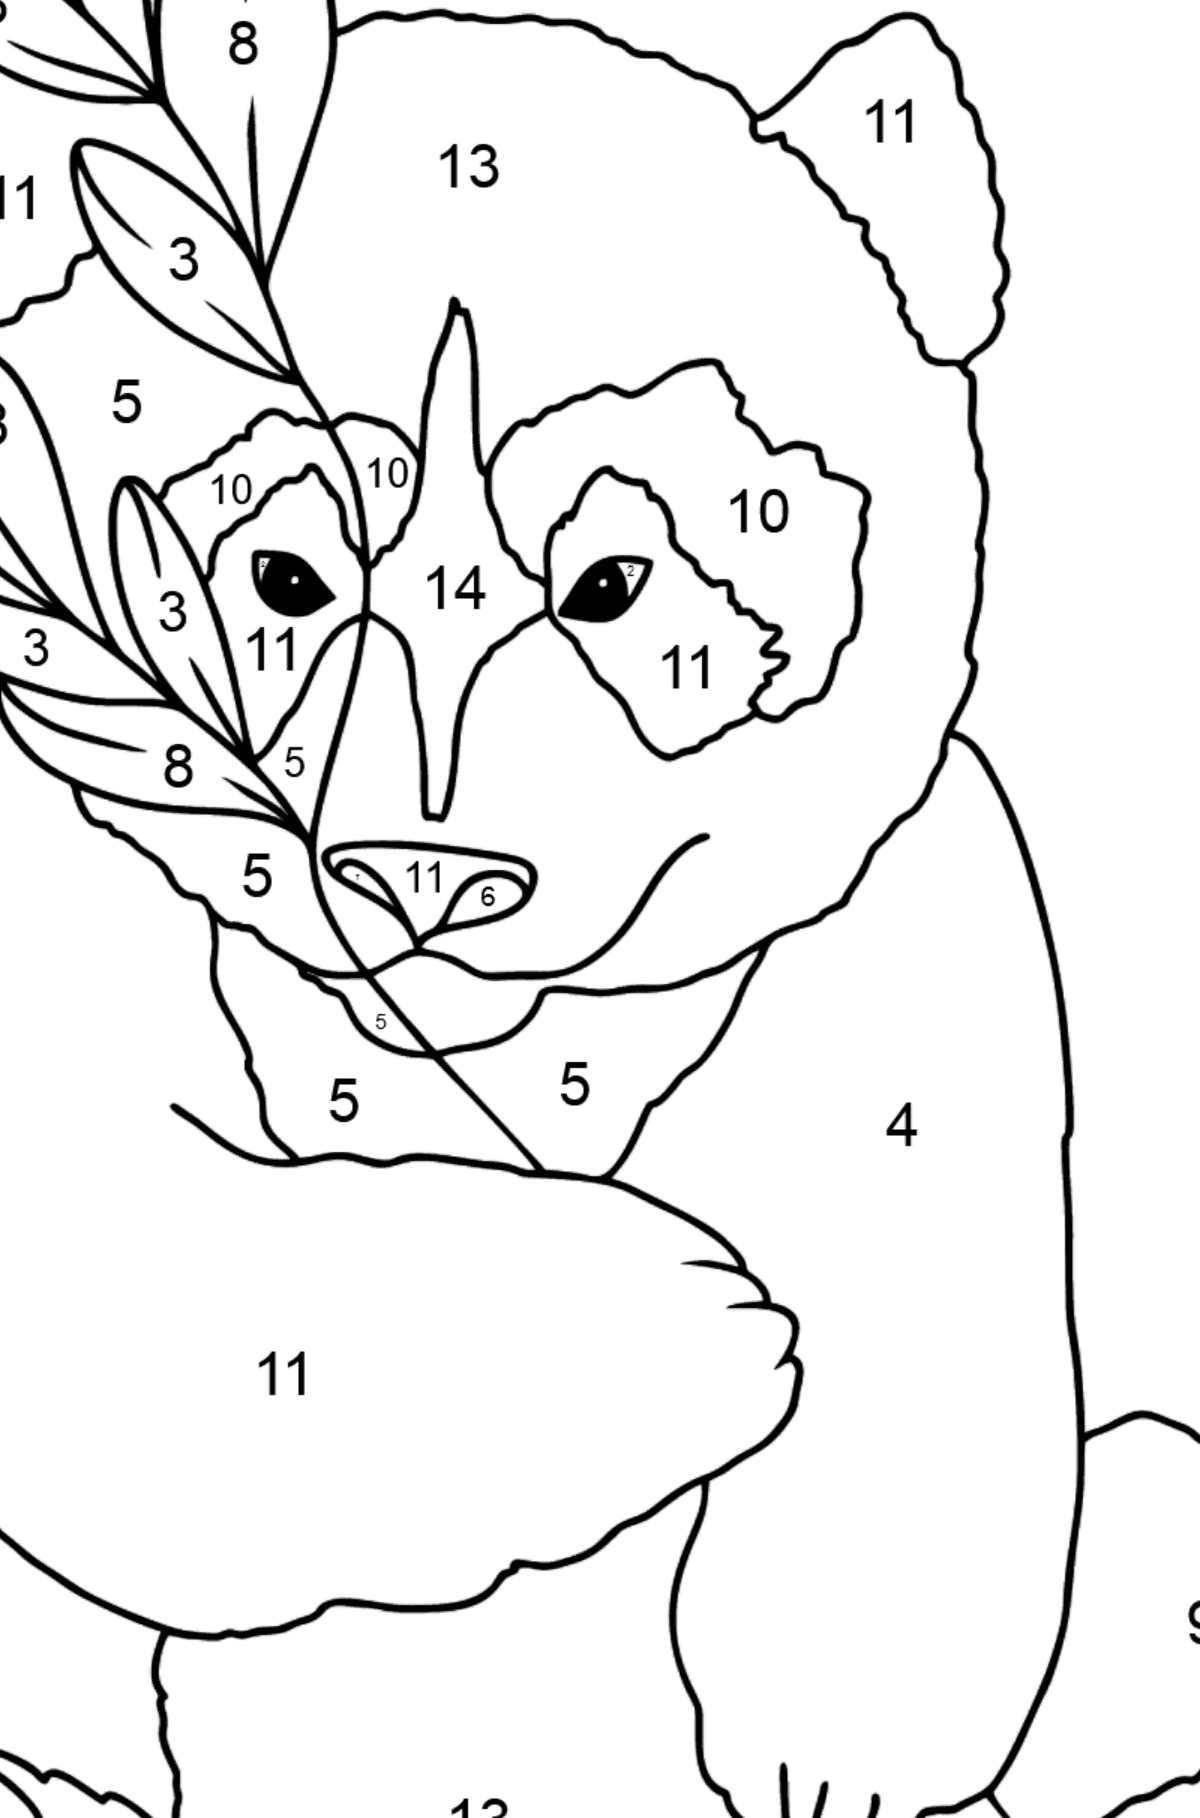 Coloring Page - A Panda is Having a Rest - Coloring by Numbers for Kids